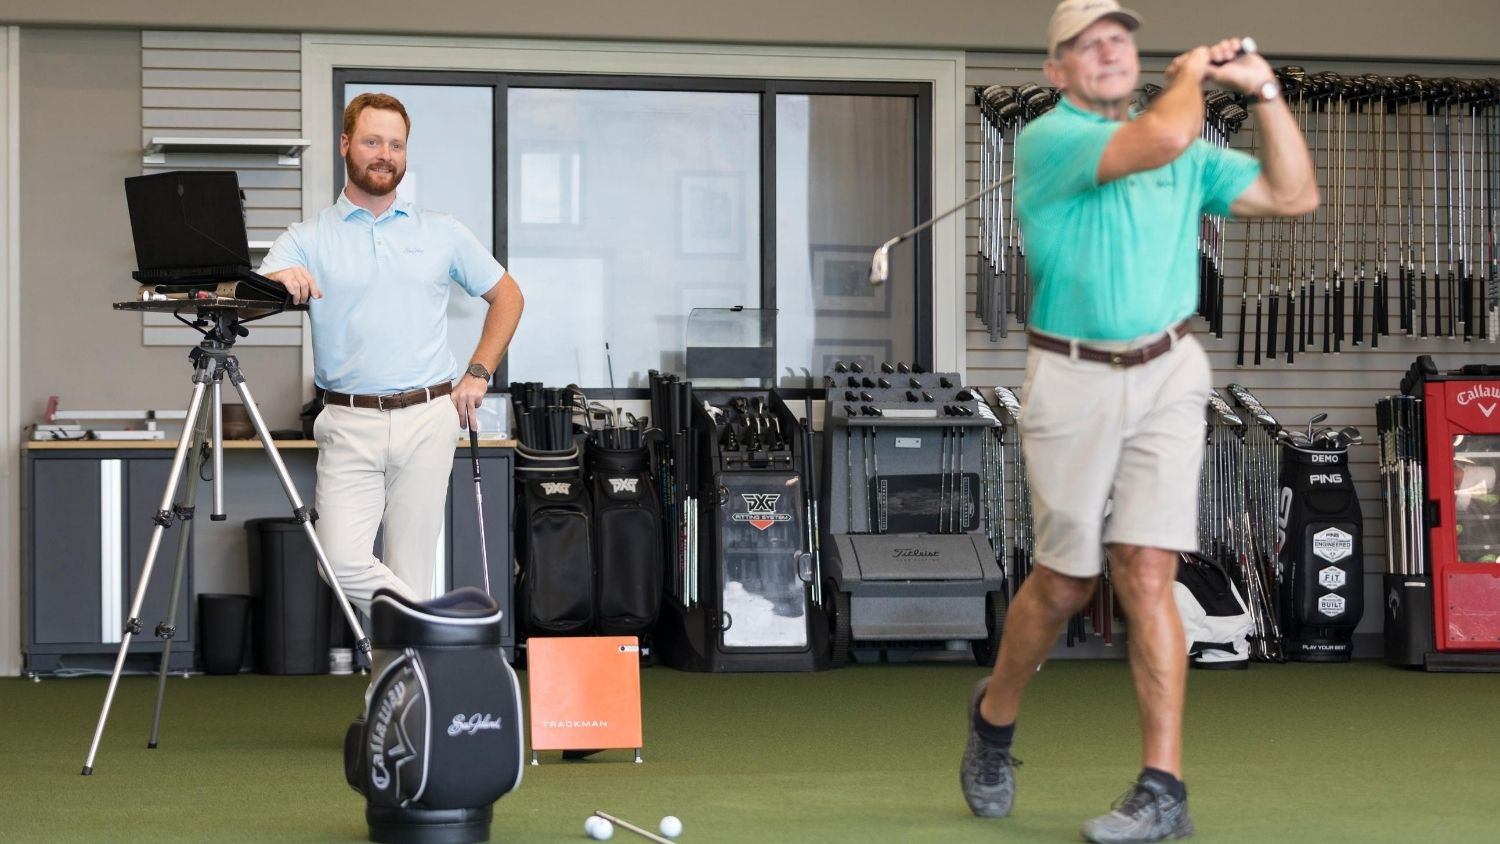 Ben-Freundt-fitting-a-club - PGA Golf Management - College of Natural Resources NC State University